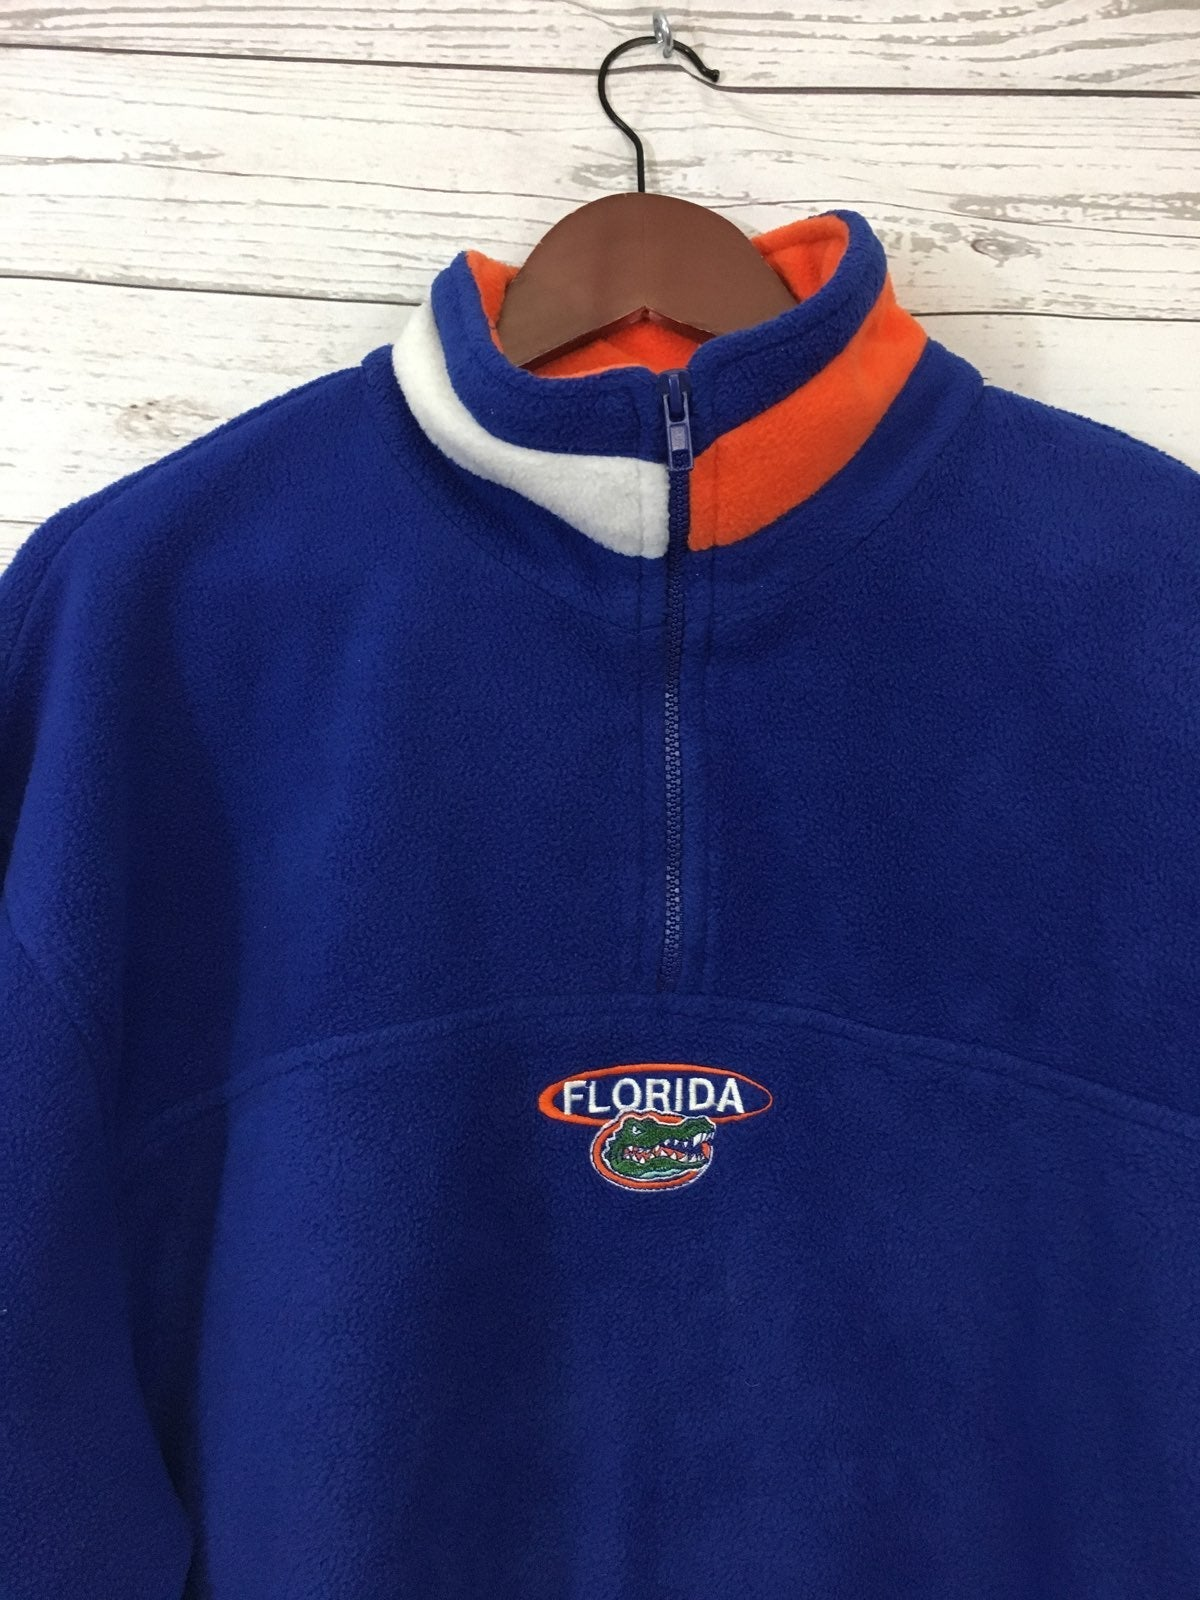 Florida Gators  Fleece Pullover Size L